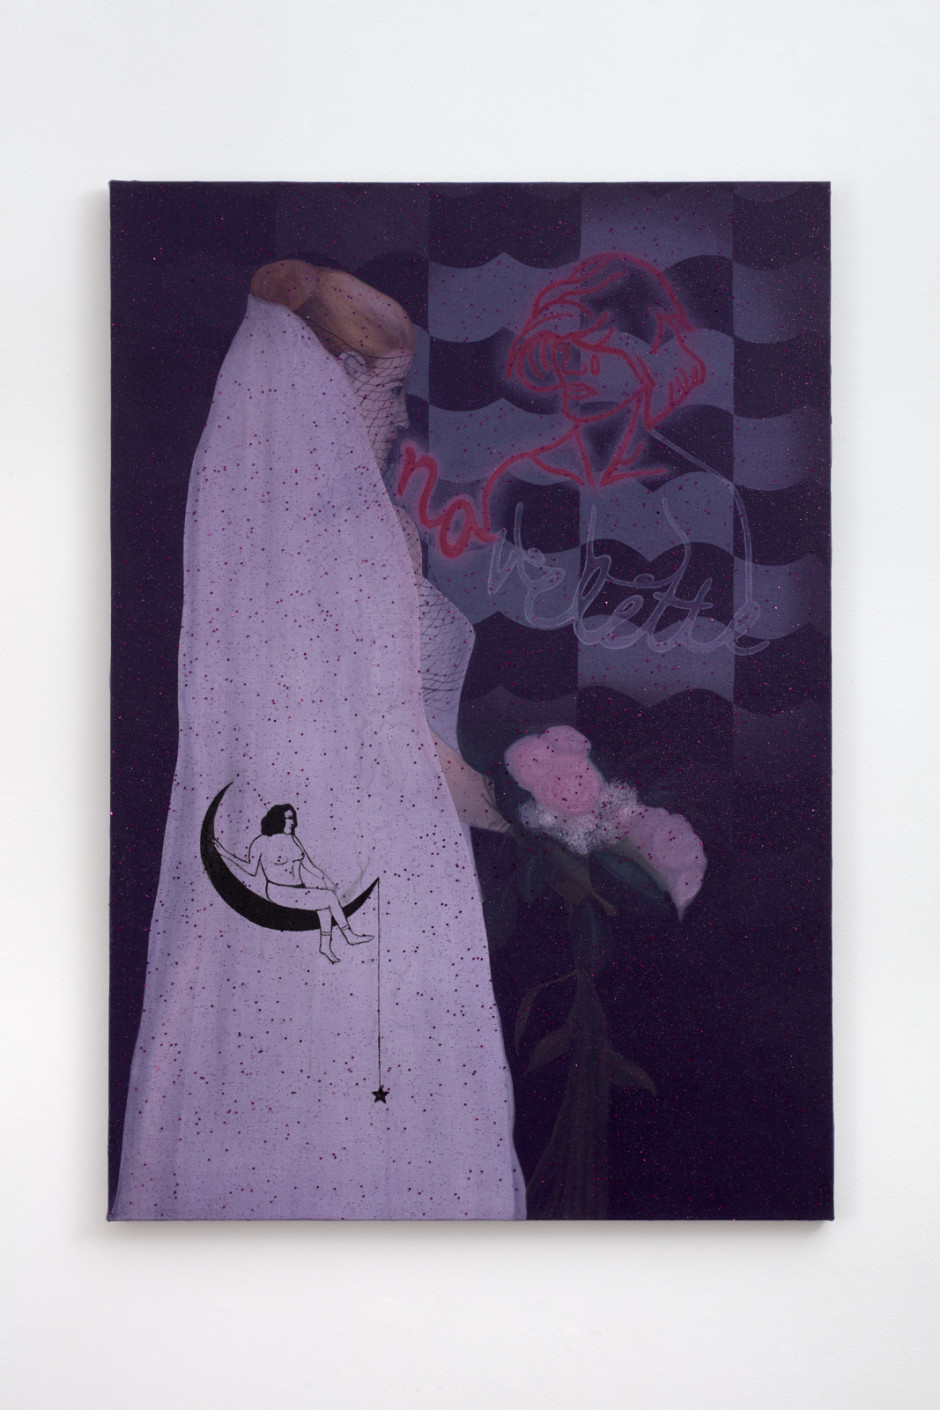 Novelette: a short novel that is often about romantic relationships and is usually not very serious, 2018  oil on hessian with textile  132.2 x 91.6 x 2.1 cm / 52 ⅛ x 36 ⅛ x ⅞ in  Photo: Robert Glowacki